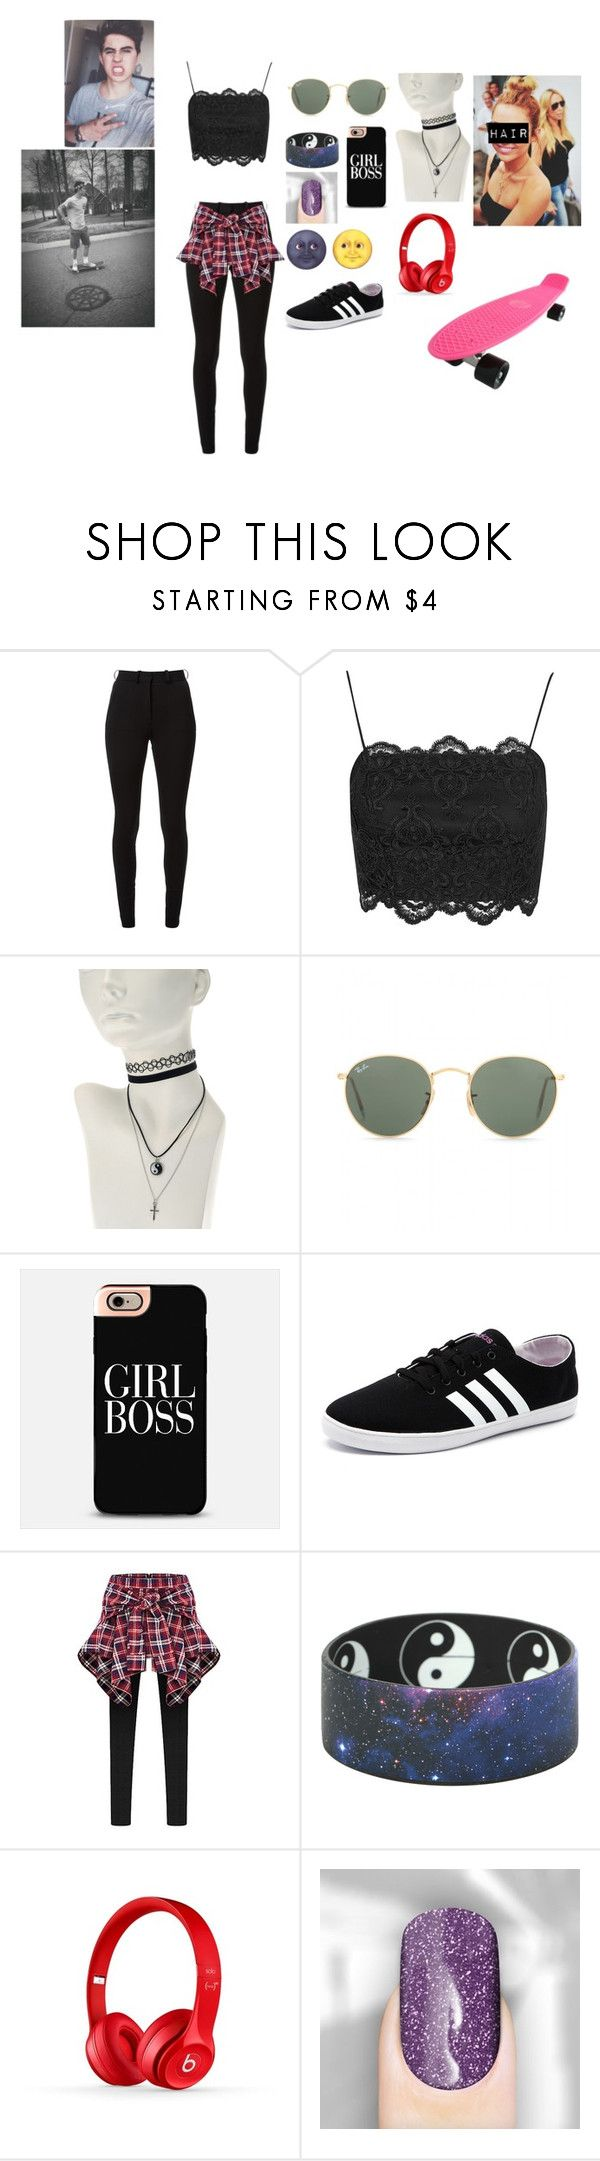 """skate park date with Nash"" by gunknown ❤ liked on Polyvore featuring Victoria Beckham, Topshop, Ray-Ban, BOSS Black, adidas NEO, Beats by Dr. Dre, Retrò, women's clothing, women's fashion and women"